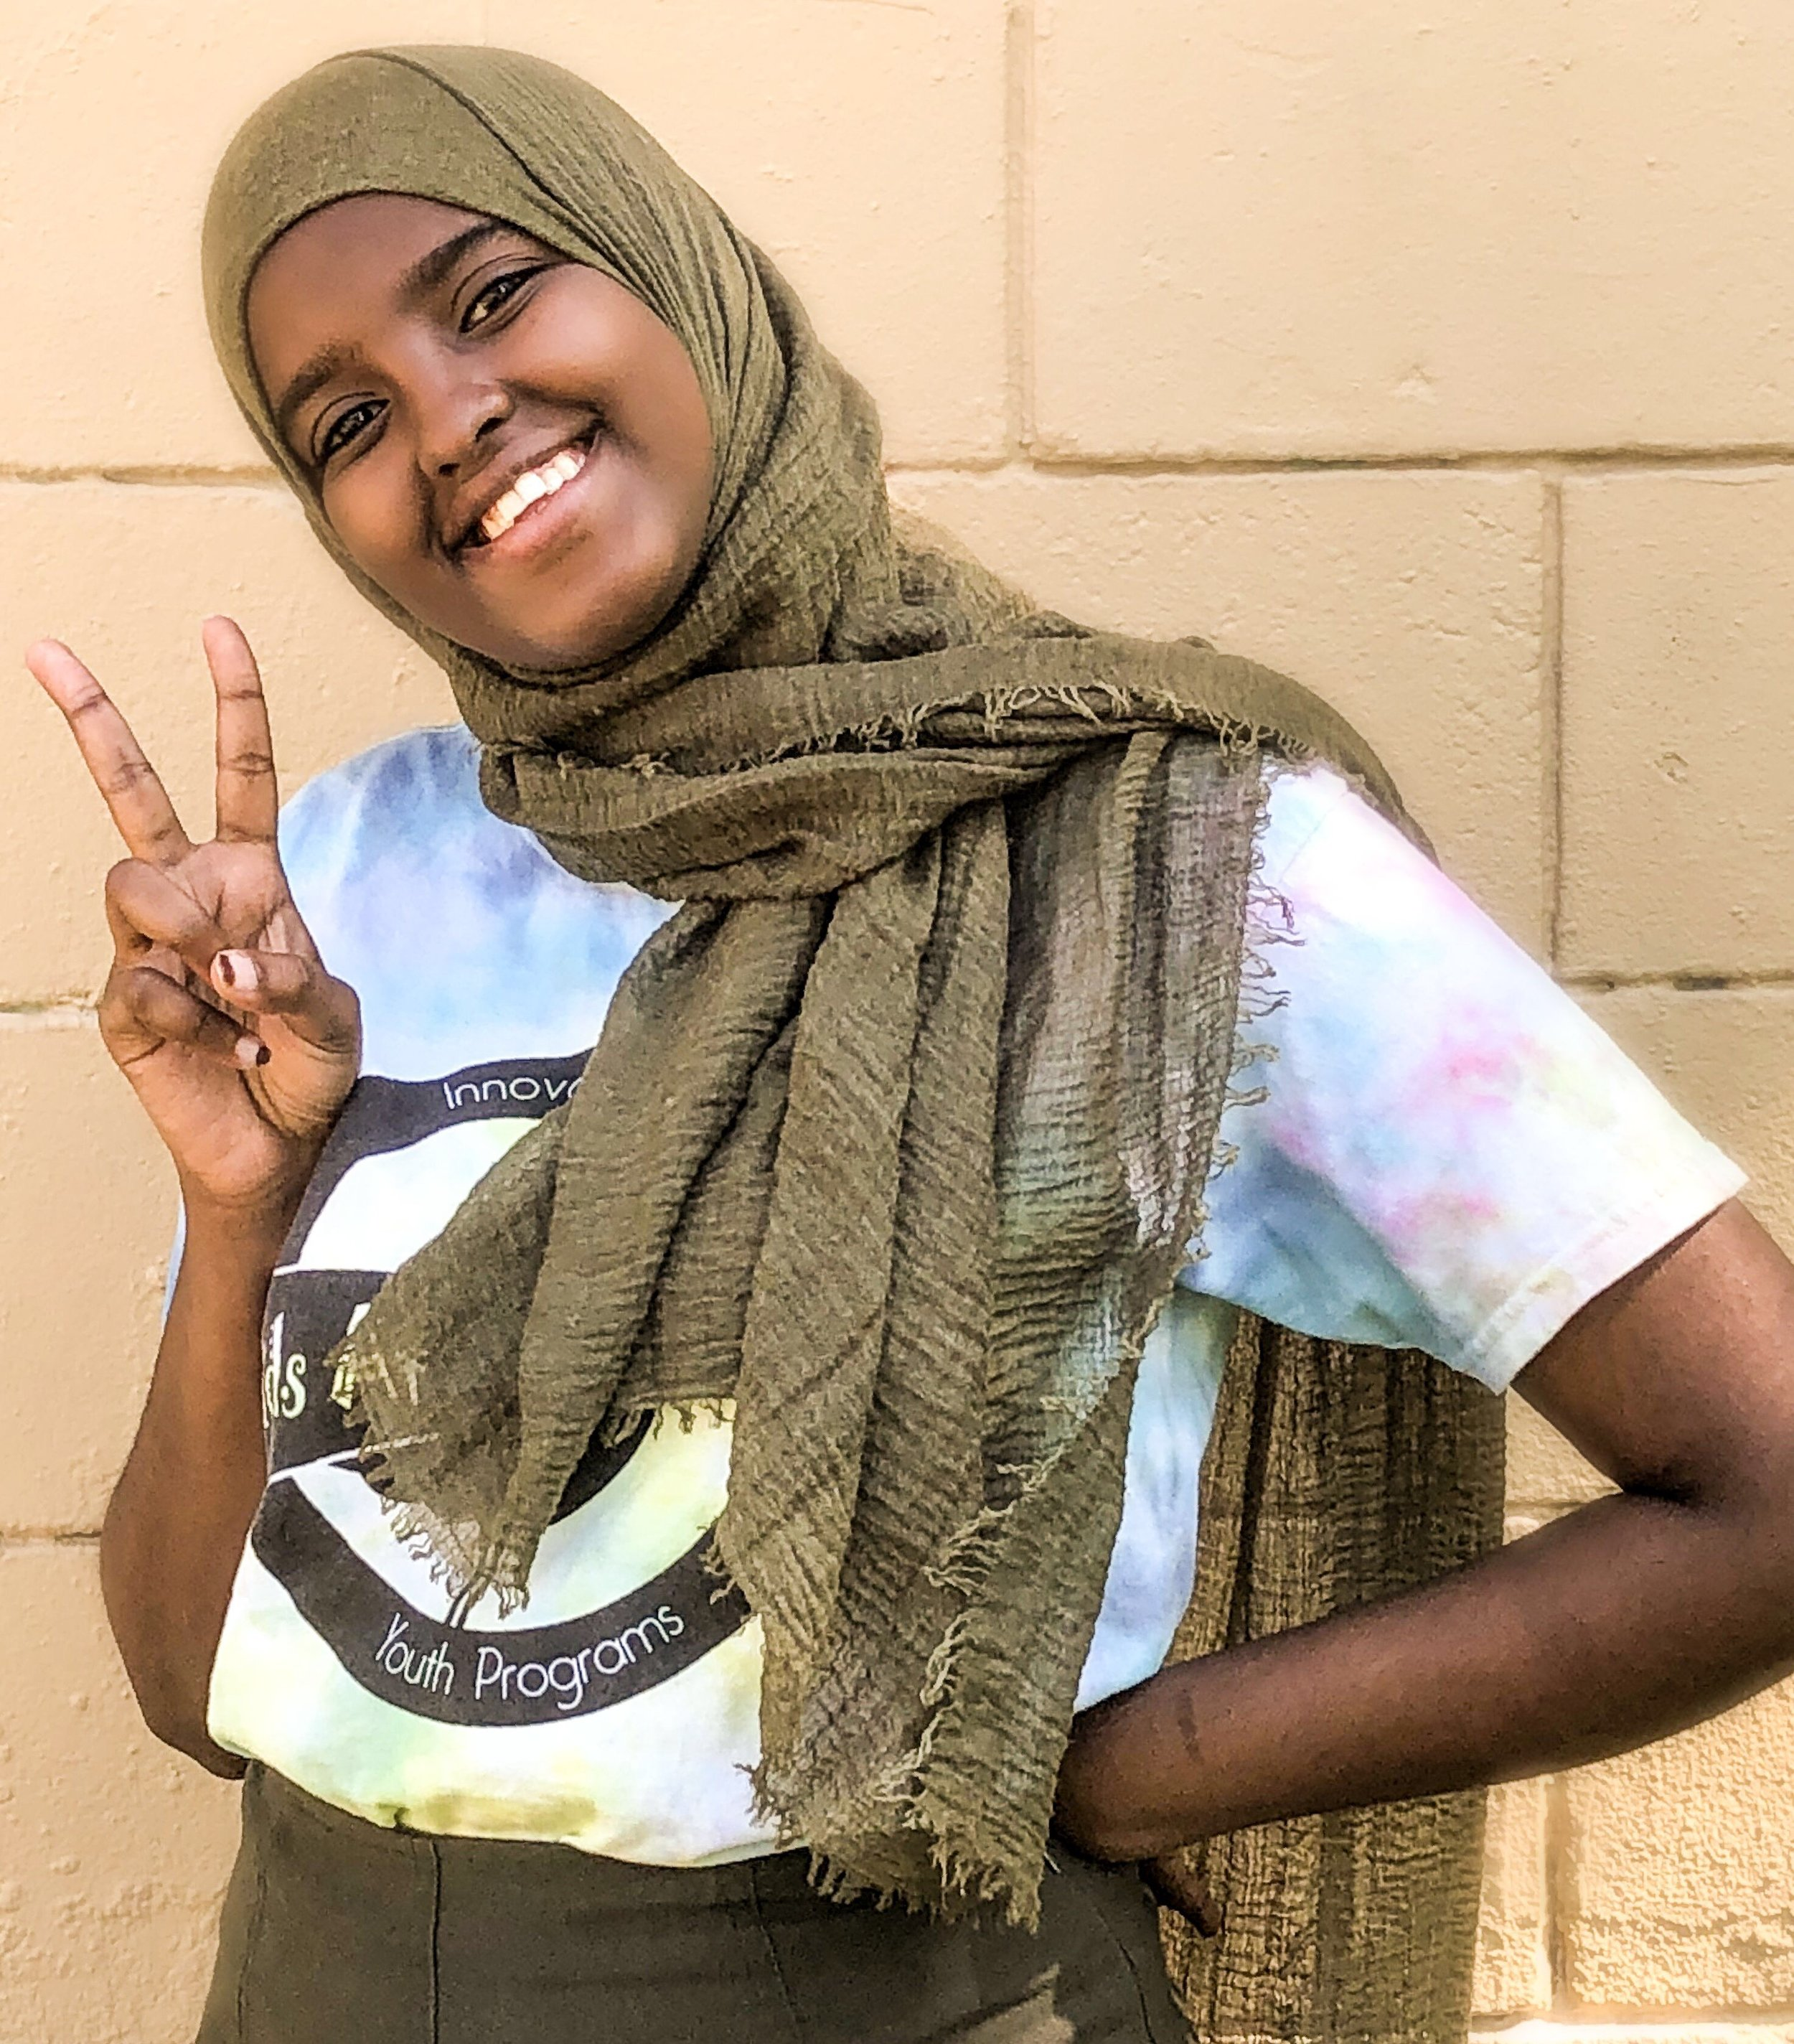 Mariam - Mariam is in her second year working for KATB. She likes sports a lot, especially playing tennis.